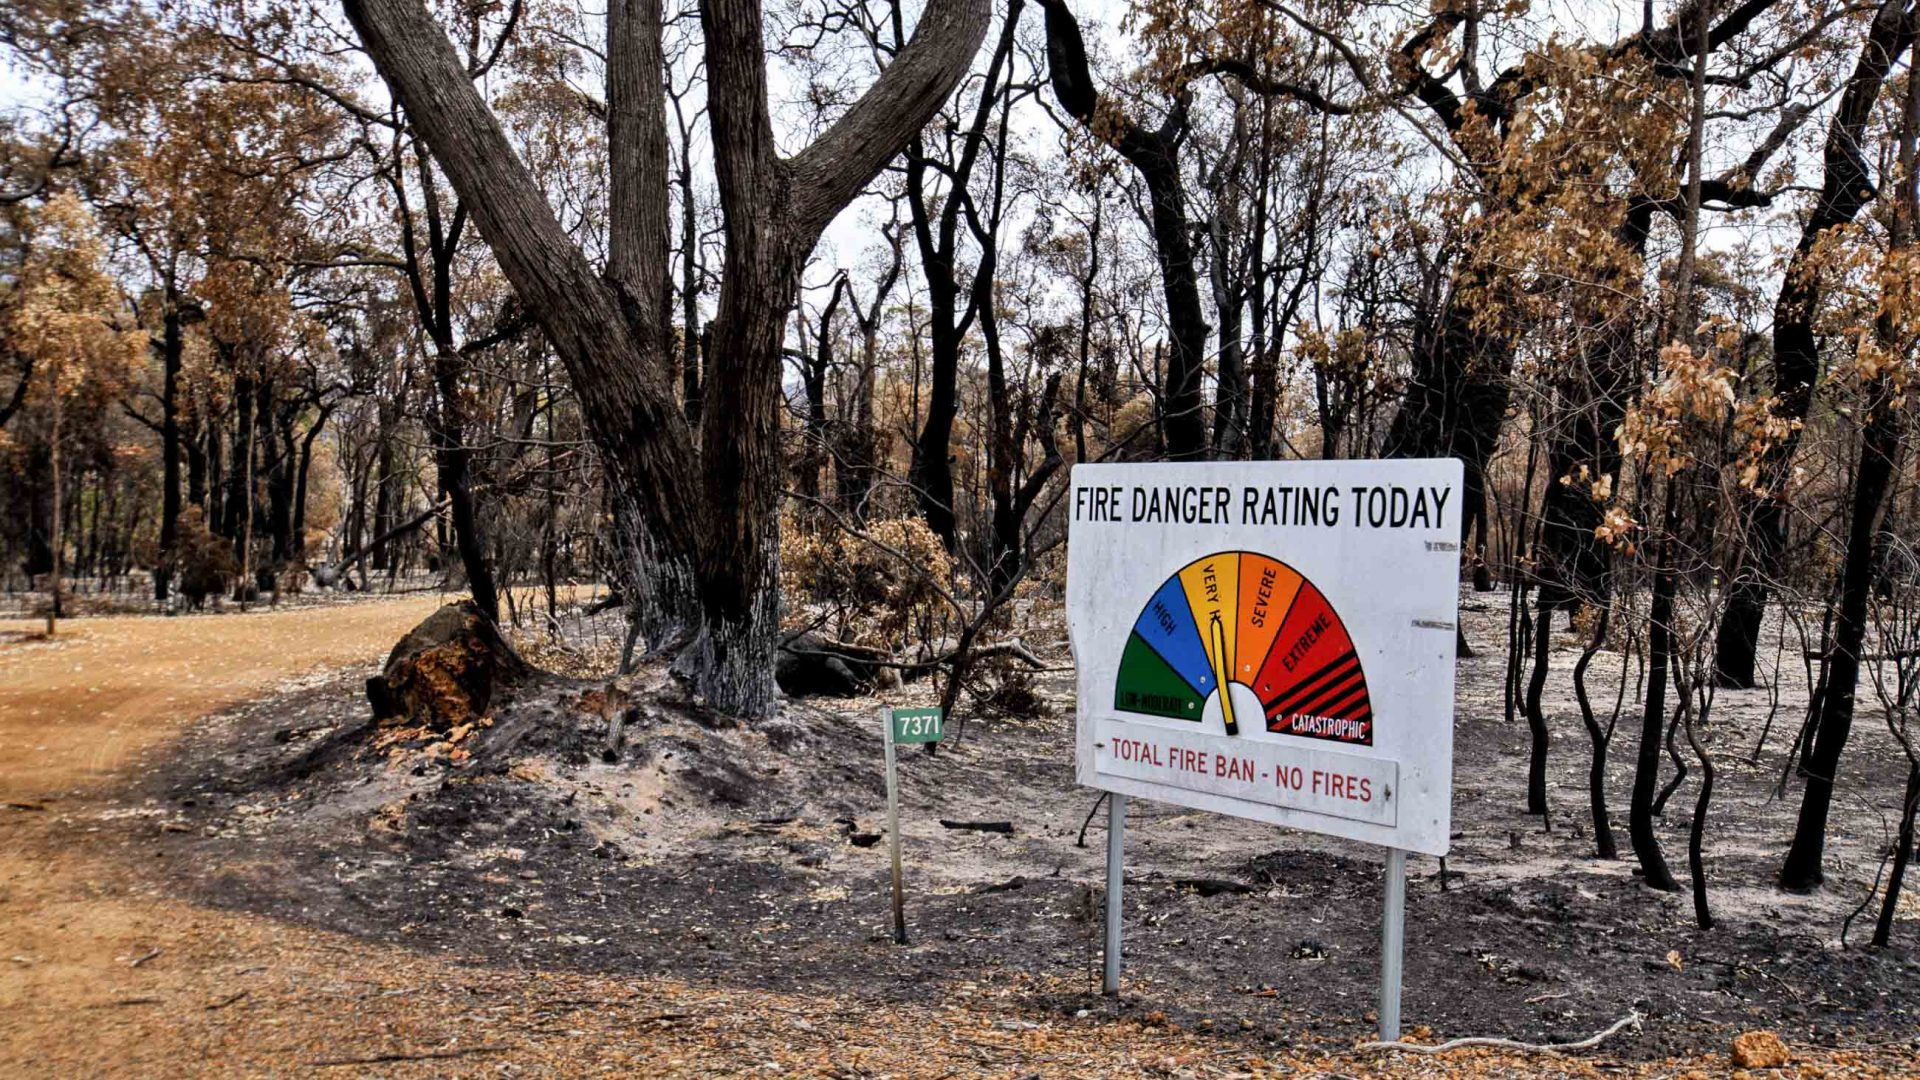 A fire danger board indicating the level of fire danger on any particular day.